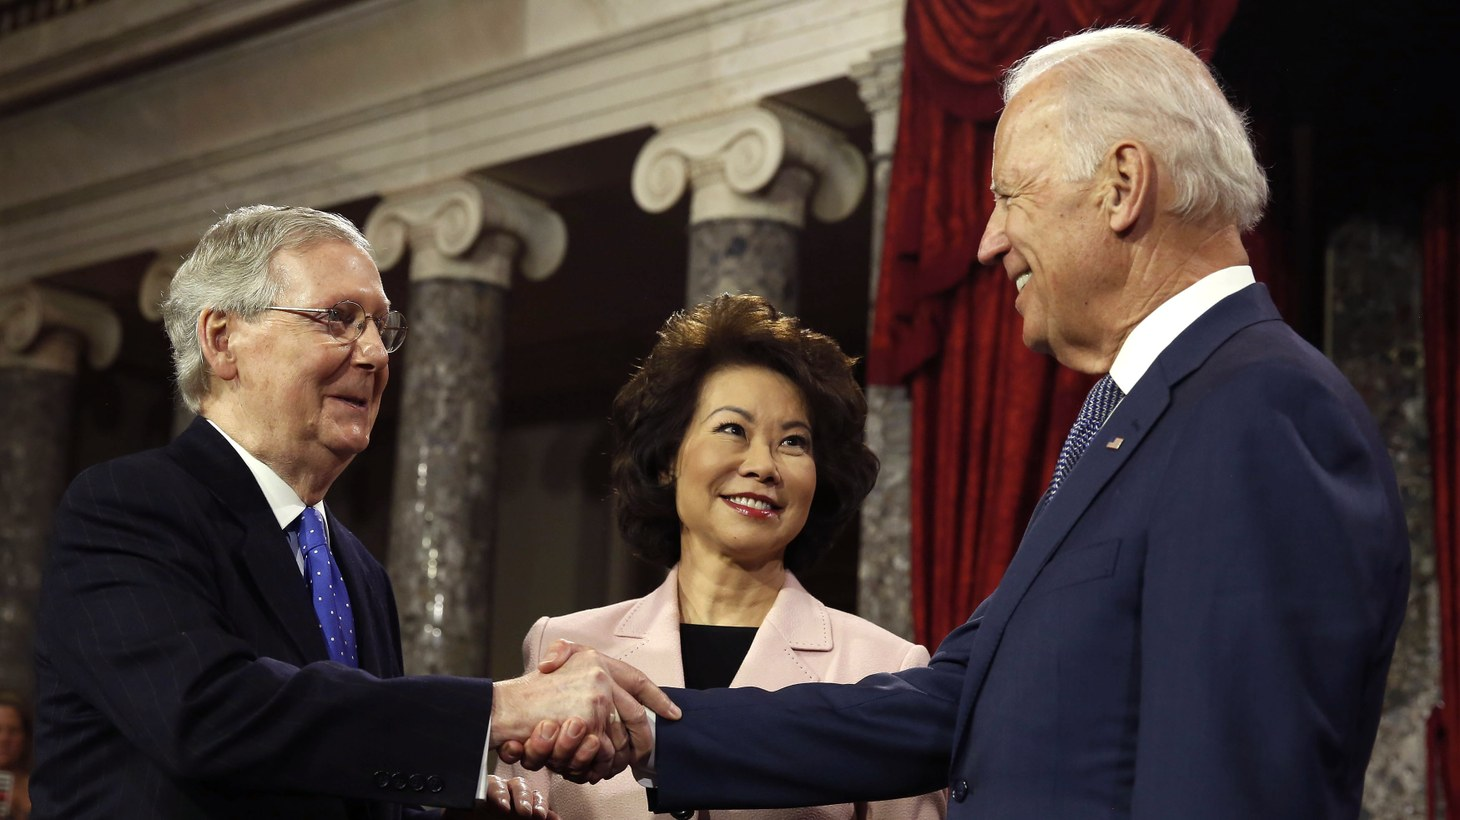 U.S. Senate Majority Leader Mitch McConnell (L) shakes hands, after he ceremonially swore-in, with Vice President Joseph Biden (R) in the Old Senate Chamber on Capitol Hill in Washington January 6, 2015. Holding the Bible is McConnell's wife, former Secretary of Labor Elaine Chao.